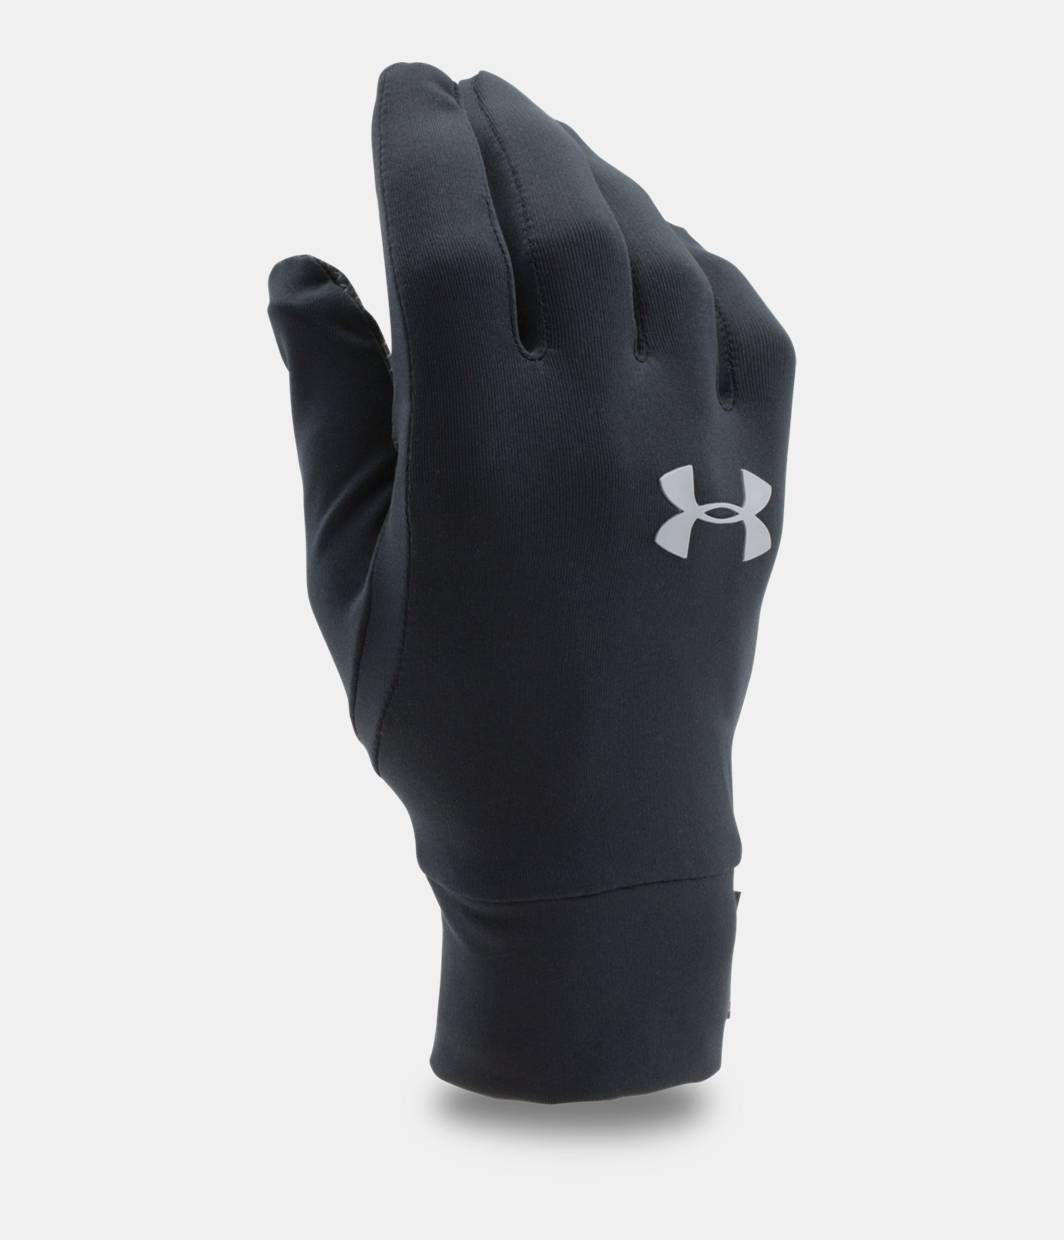 Under armour leather work gloves - Ua Armour Liner Gloves Black Zoomed Image